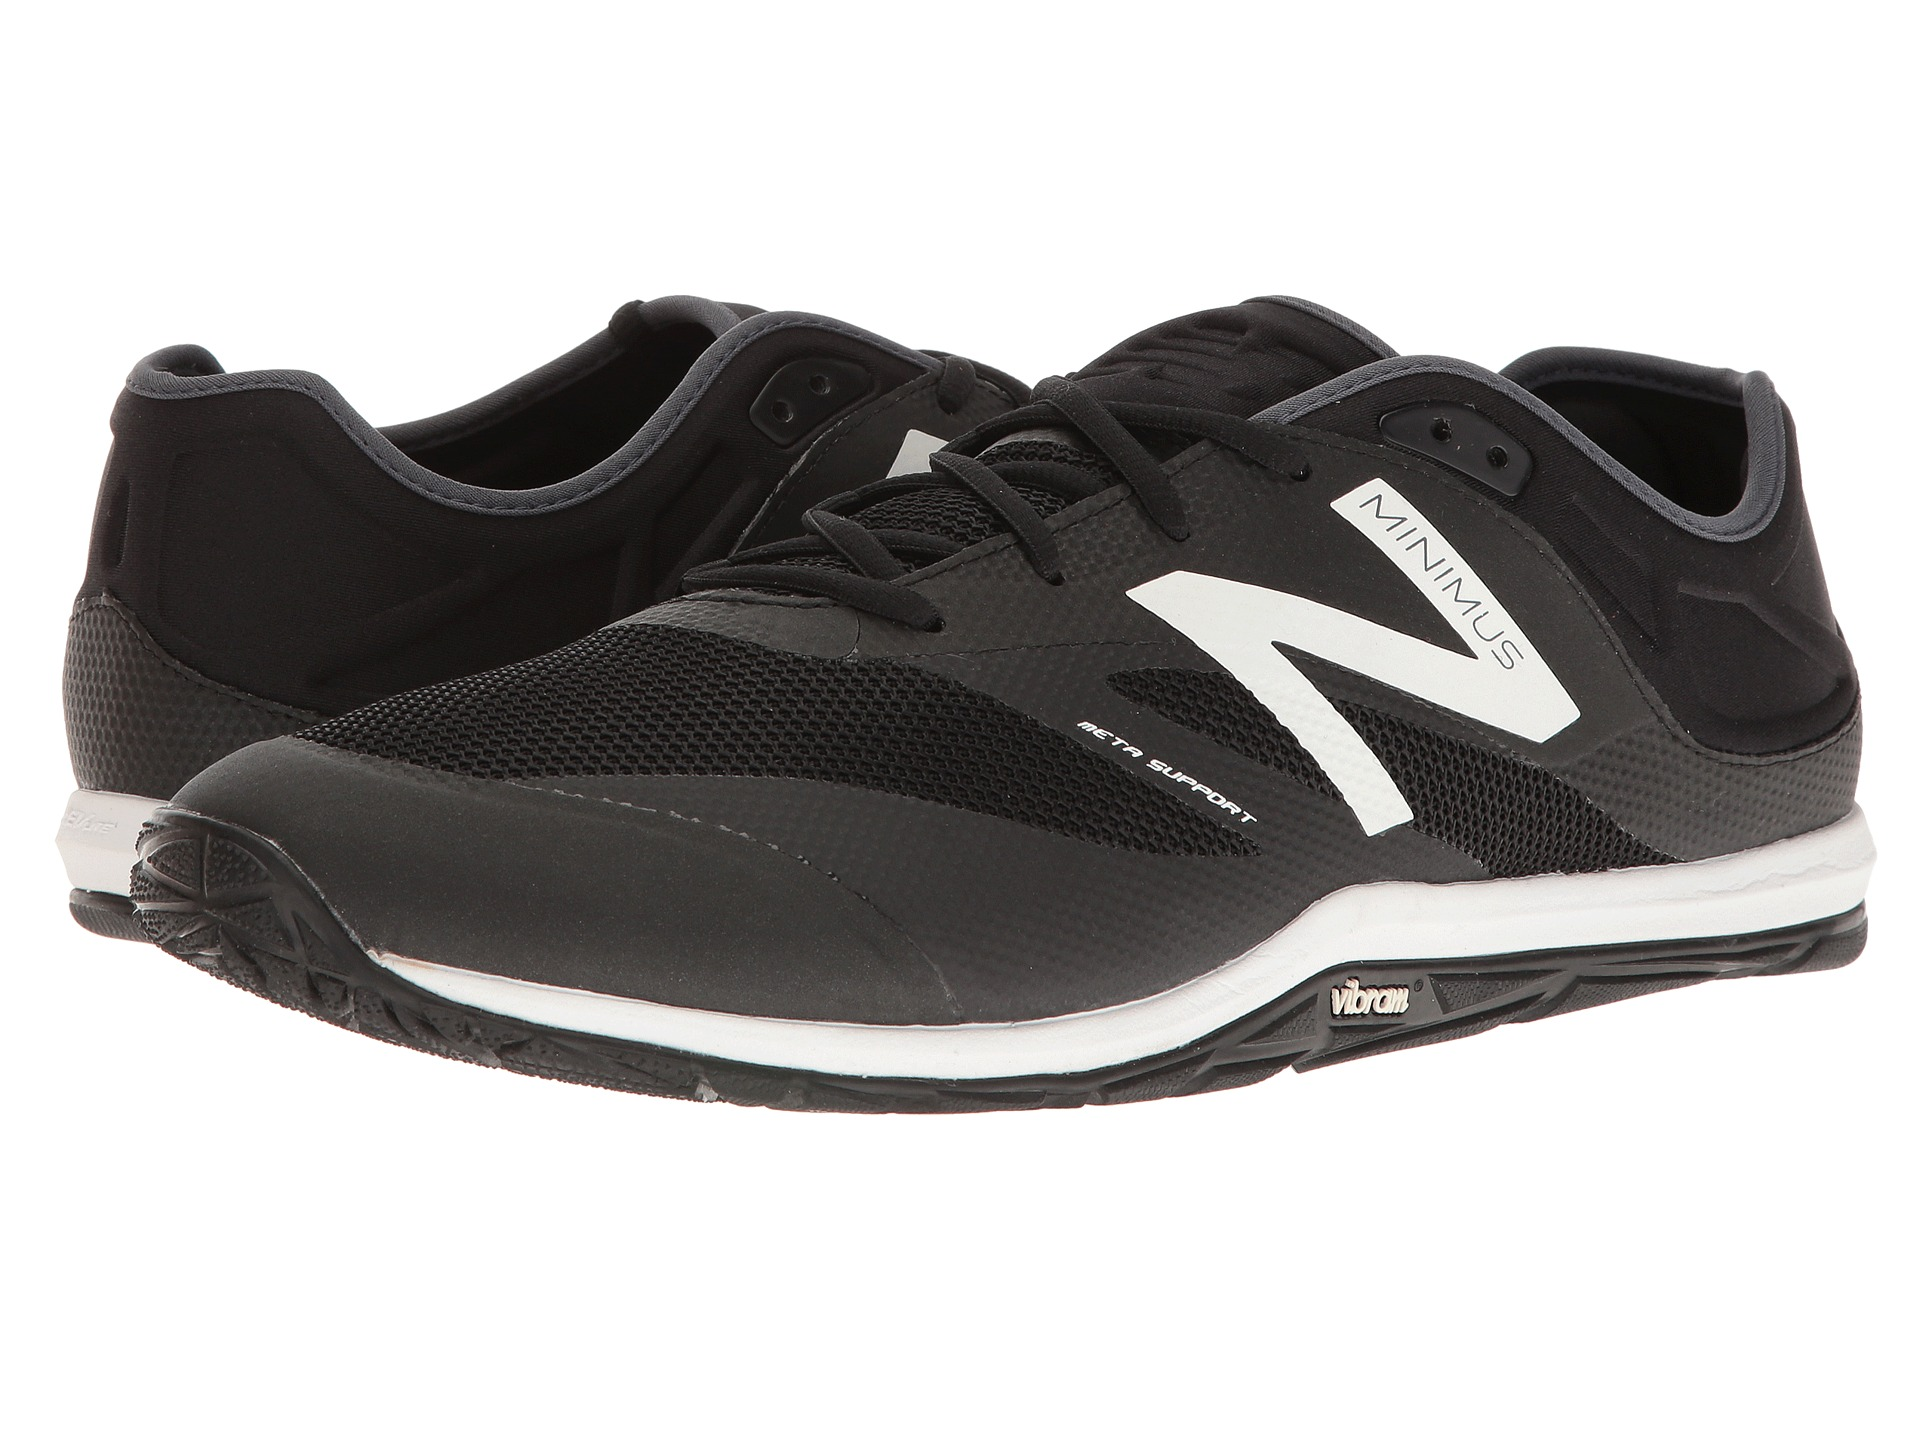 New Balance Strength Training Shoes